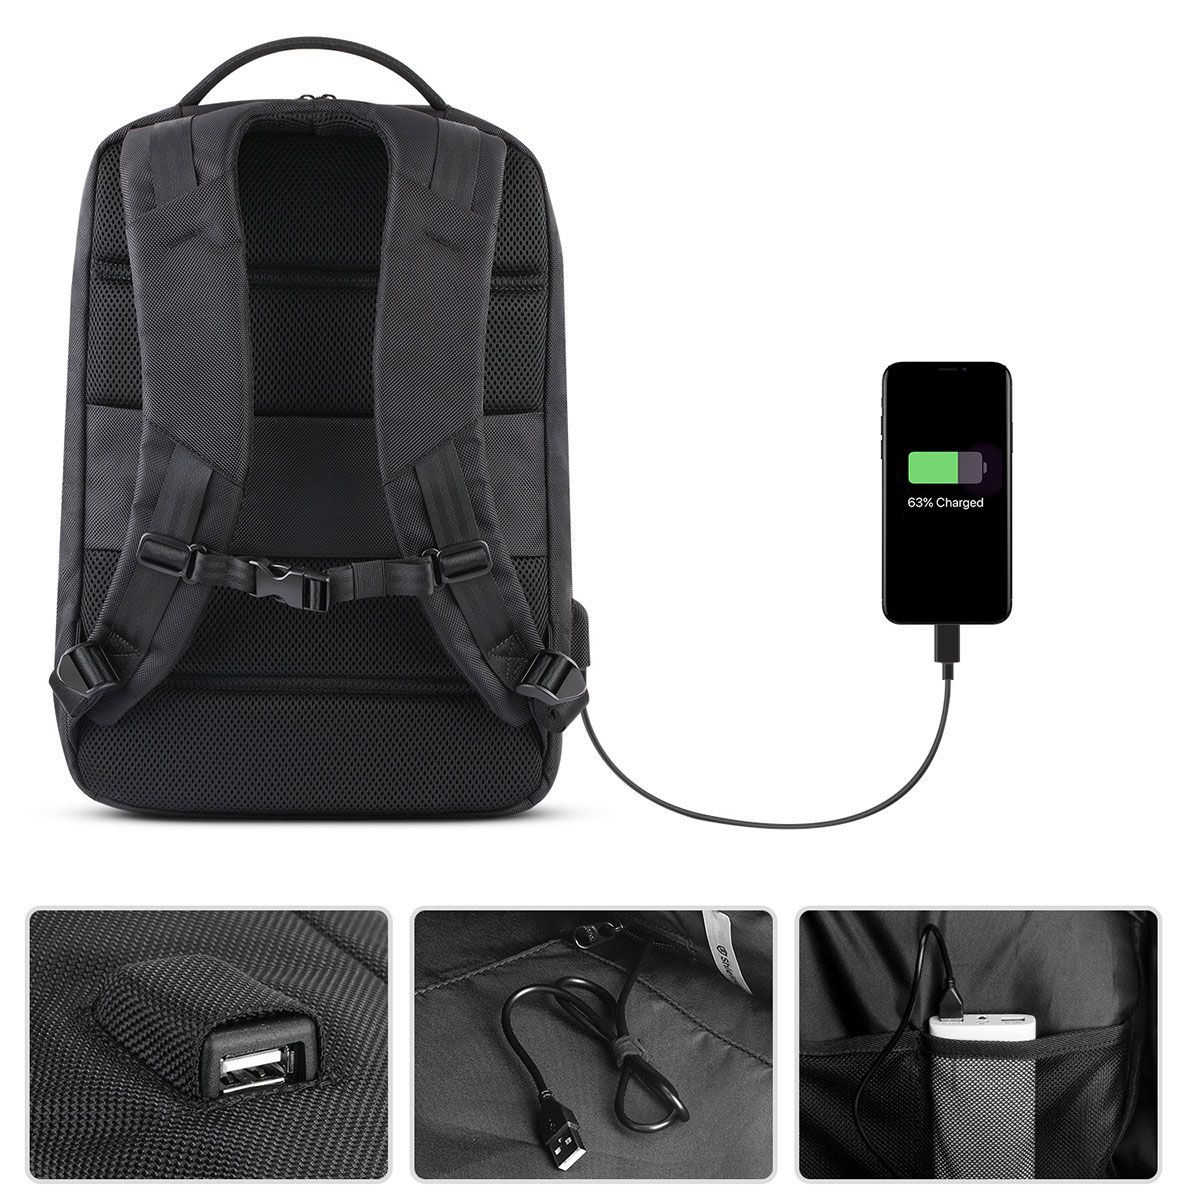 27b3a35f0 SHIELDON Travel Laptop Backpack, Business Anti Theft Slim Durable Laptops Backpack  with USB Charging Port, Water Resistant College School Computer Bag for ...